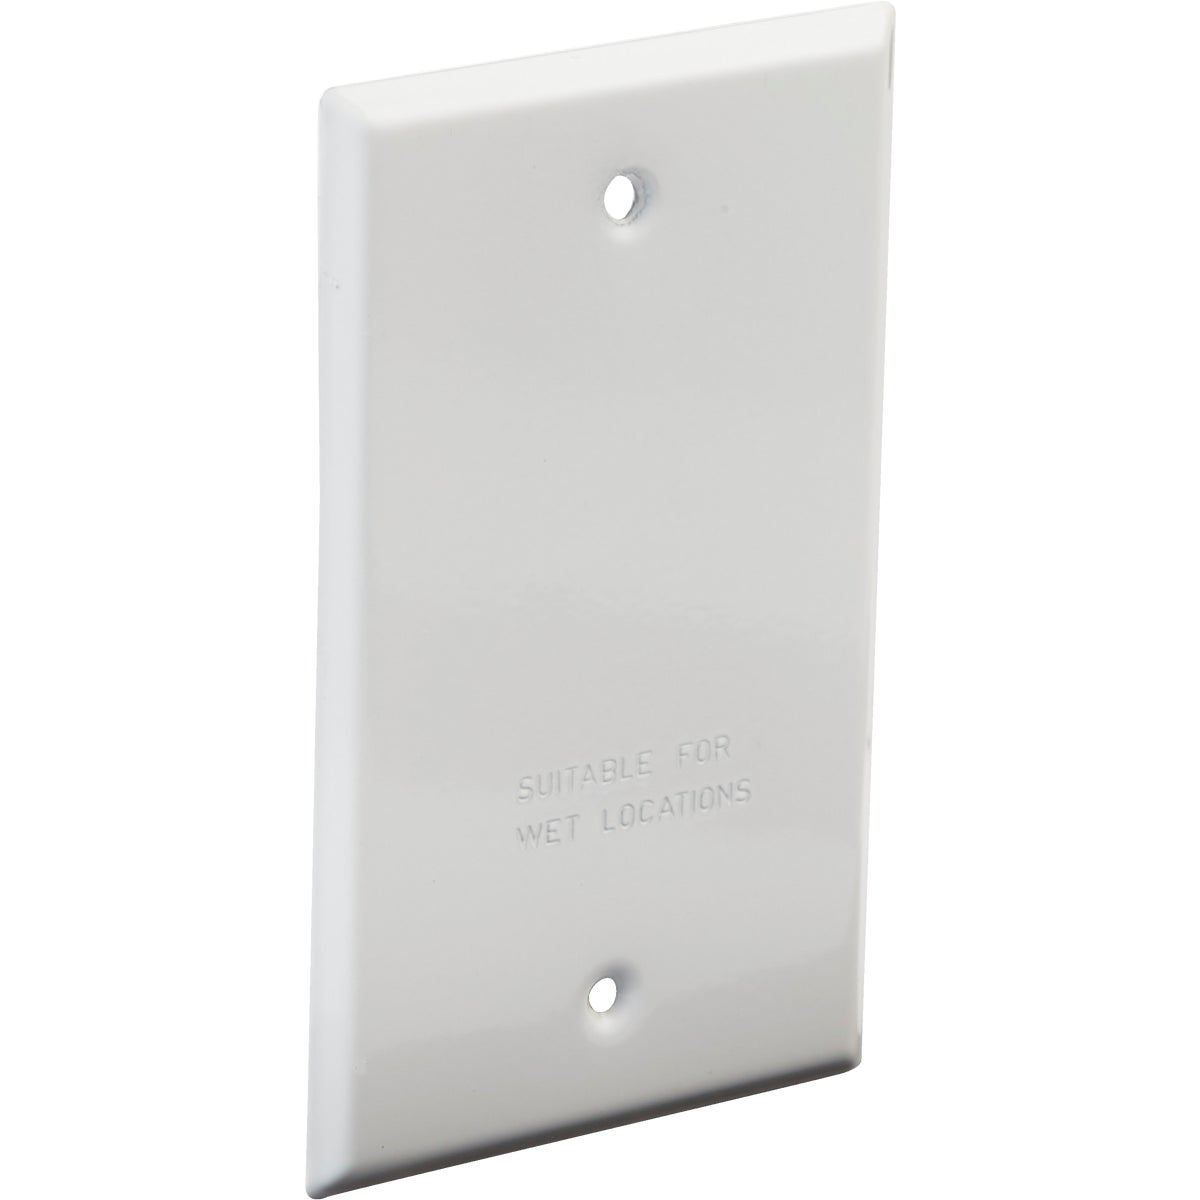 WHT OUTDOOR BLANK COVER